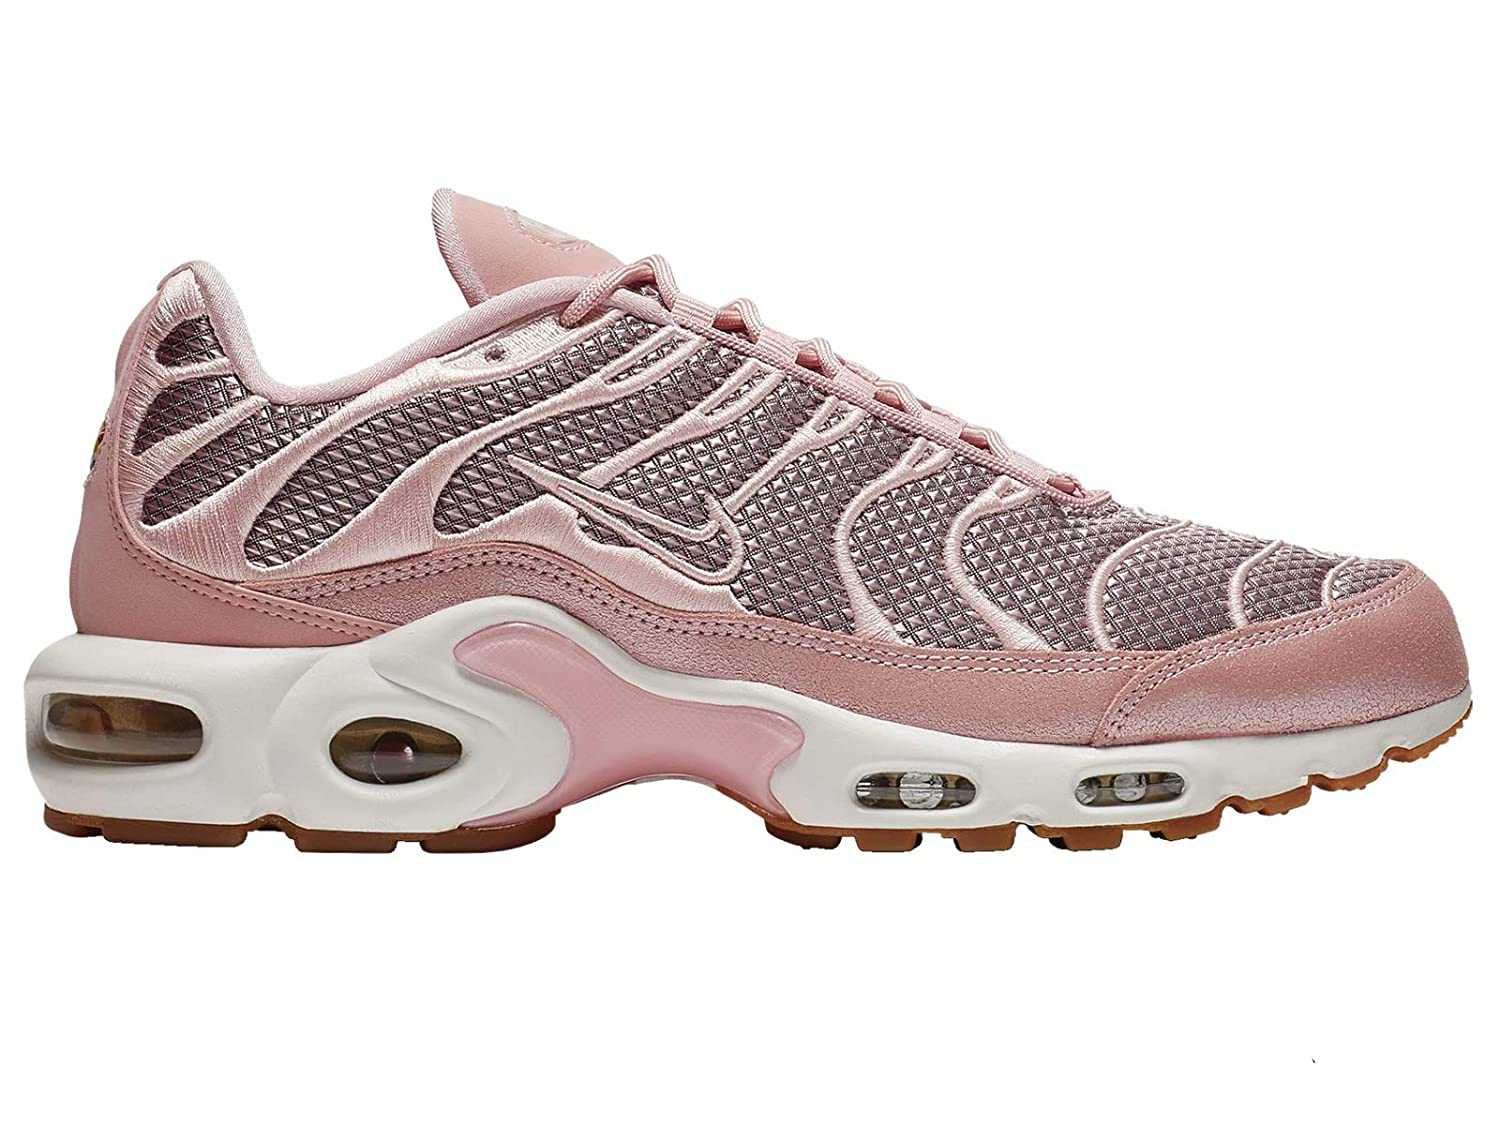 separation shoes 8afaf 0fb41 Amazon.com   Nike Air Max Plus - Women s Sheen Metallic Gold Summit White  Nylon Running Shoes   Shoes